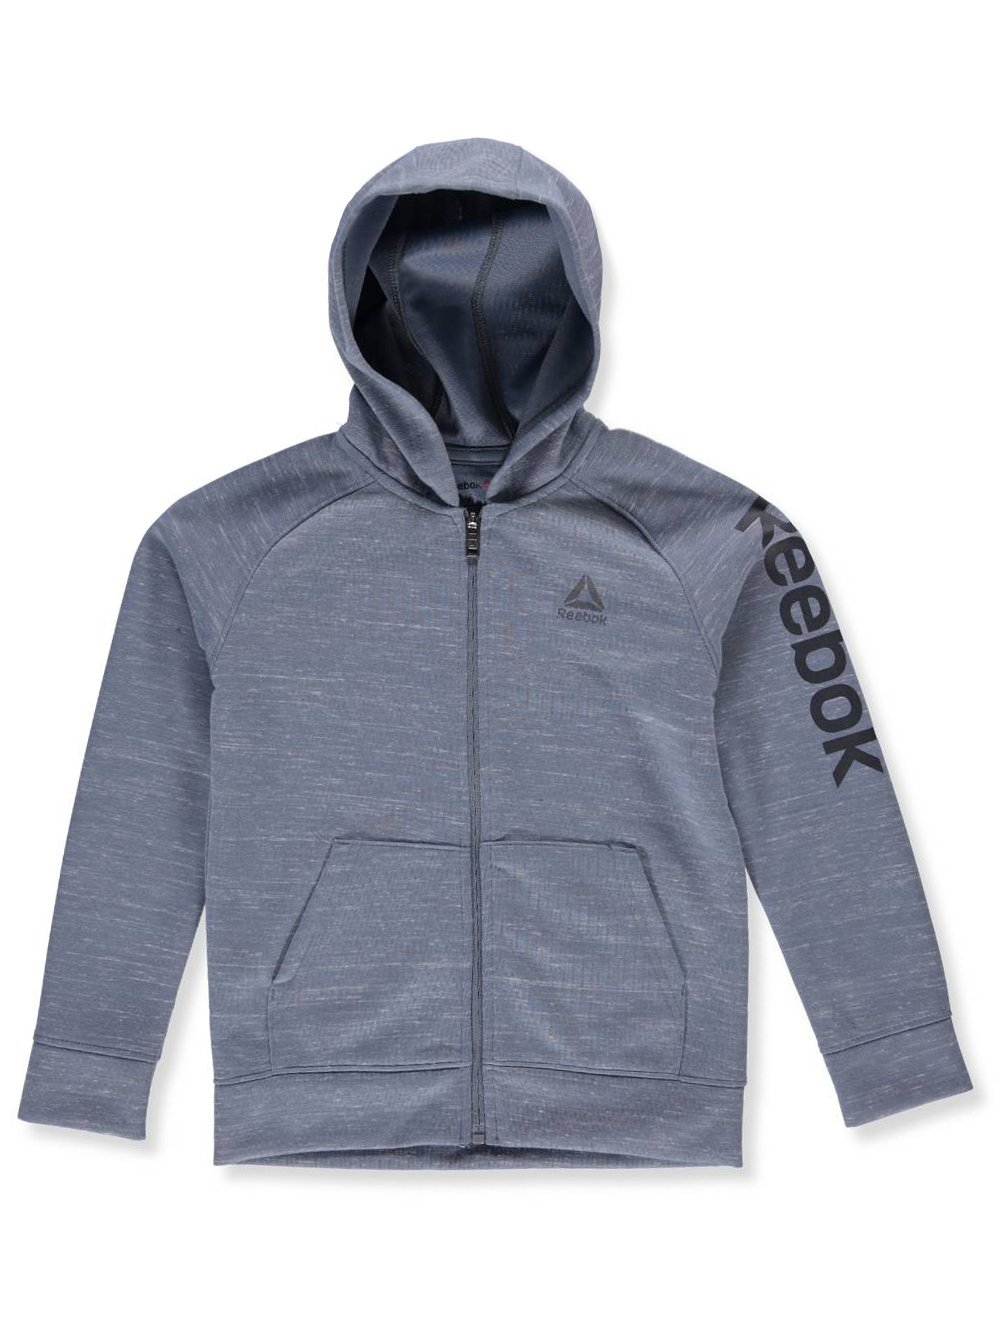 Reebok Boys Sporty Double Knit Zip-up Hooded Jacket Q_2424